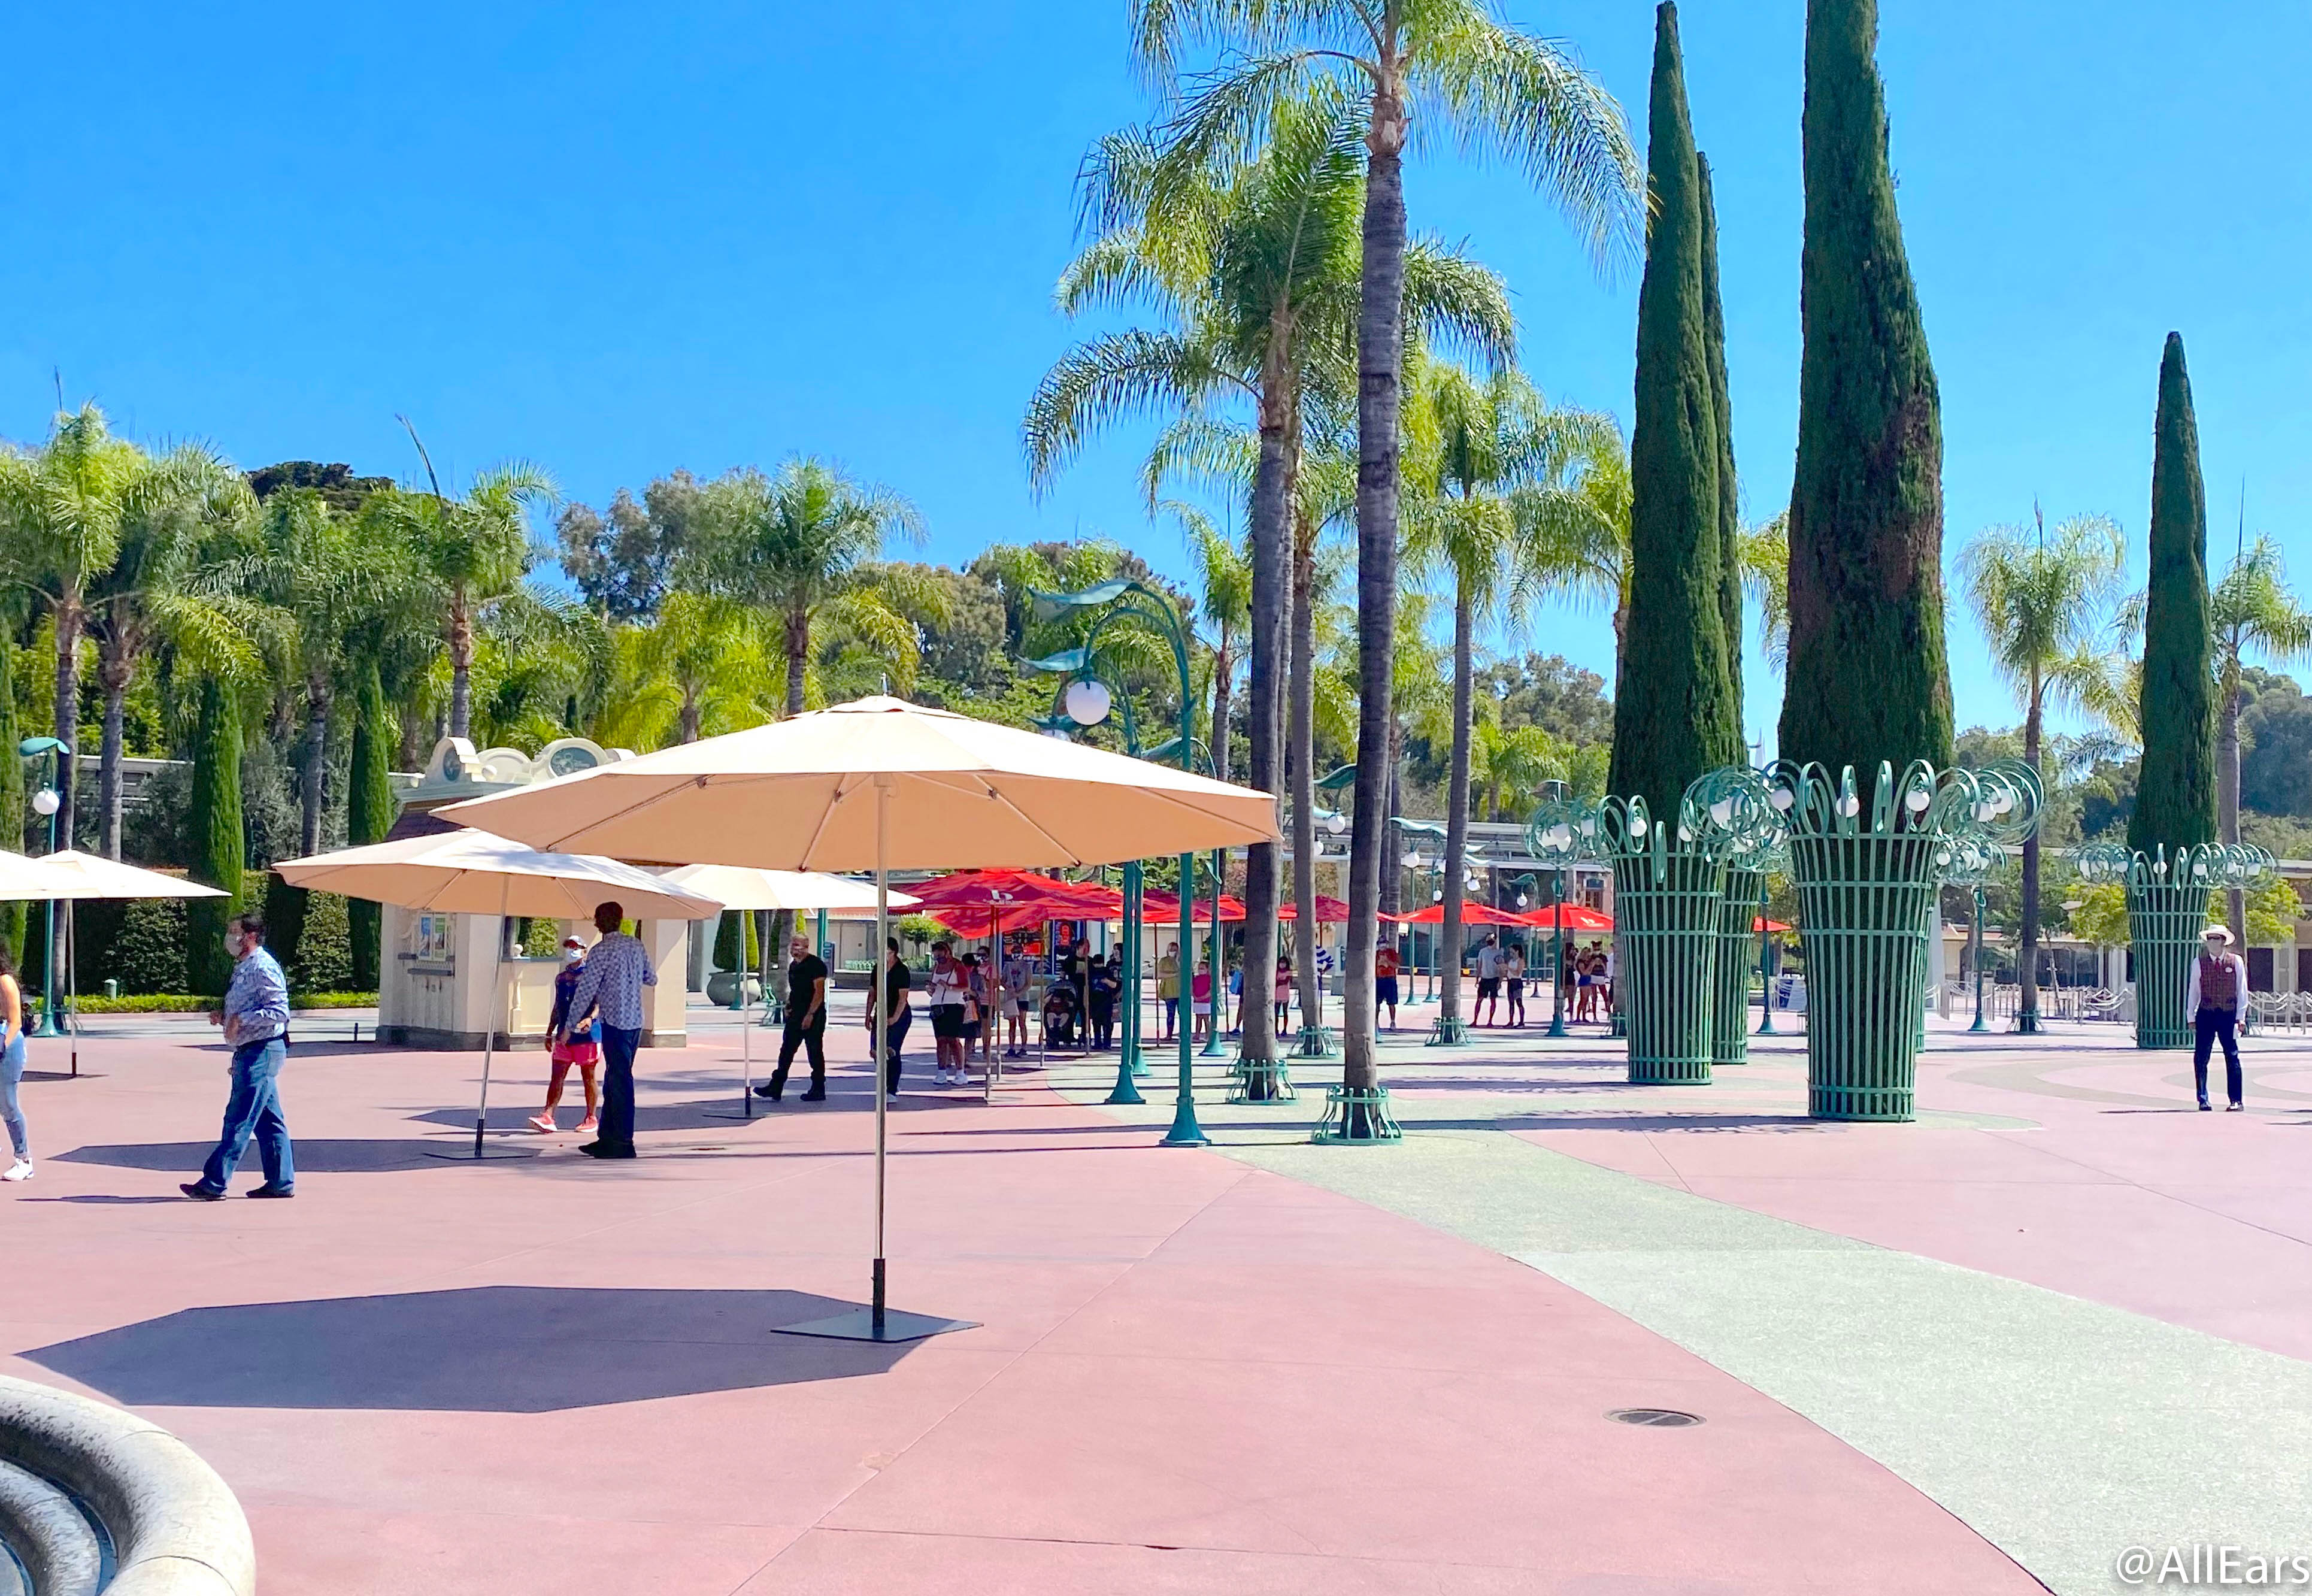 NEWS: Disneyland Reaches Return to Work Agreements With 11 Unions in Preparation for Reopening - AllEars.Net